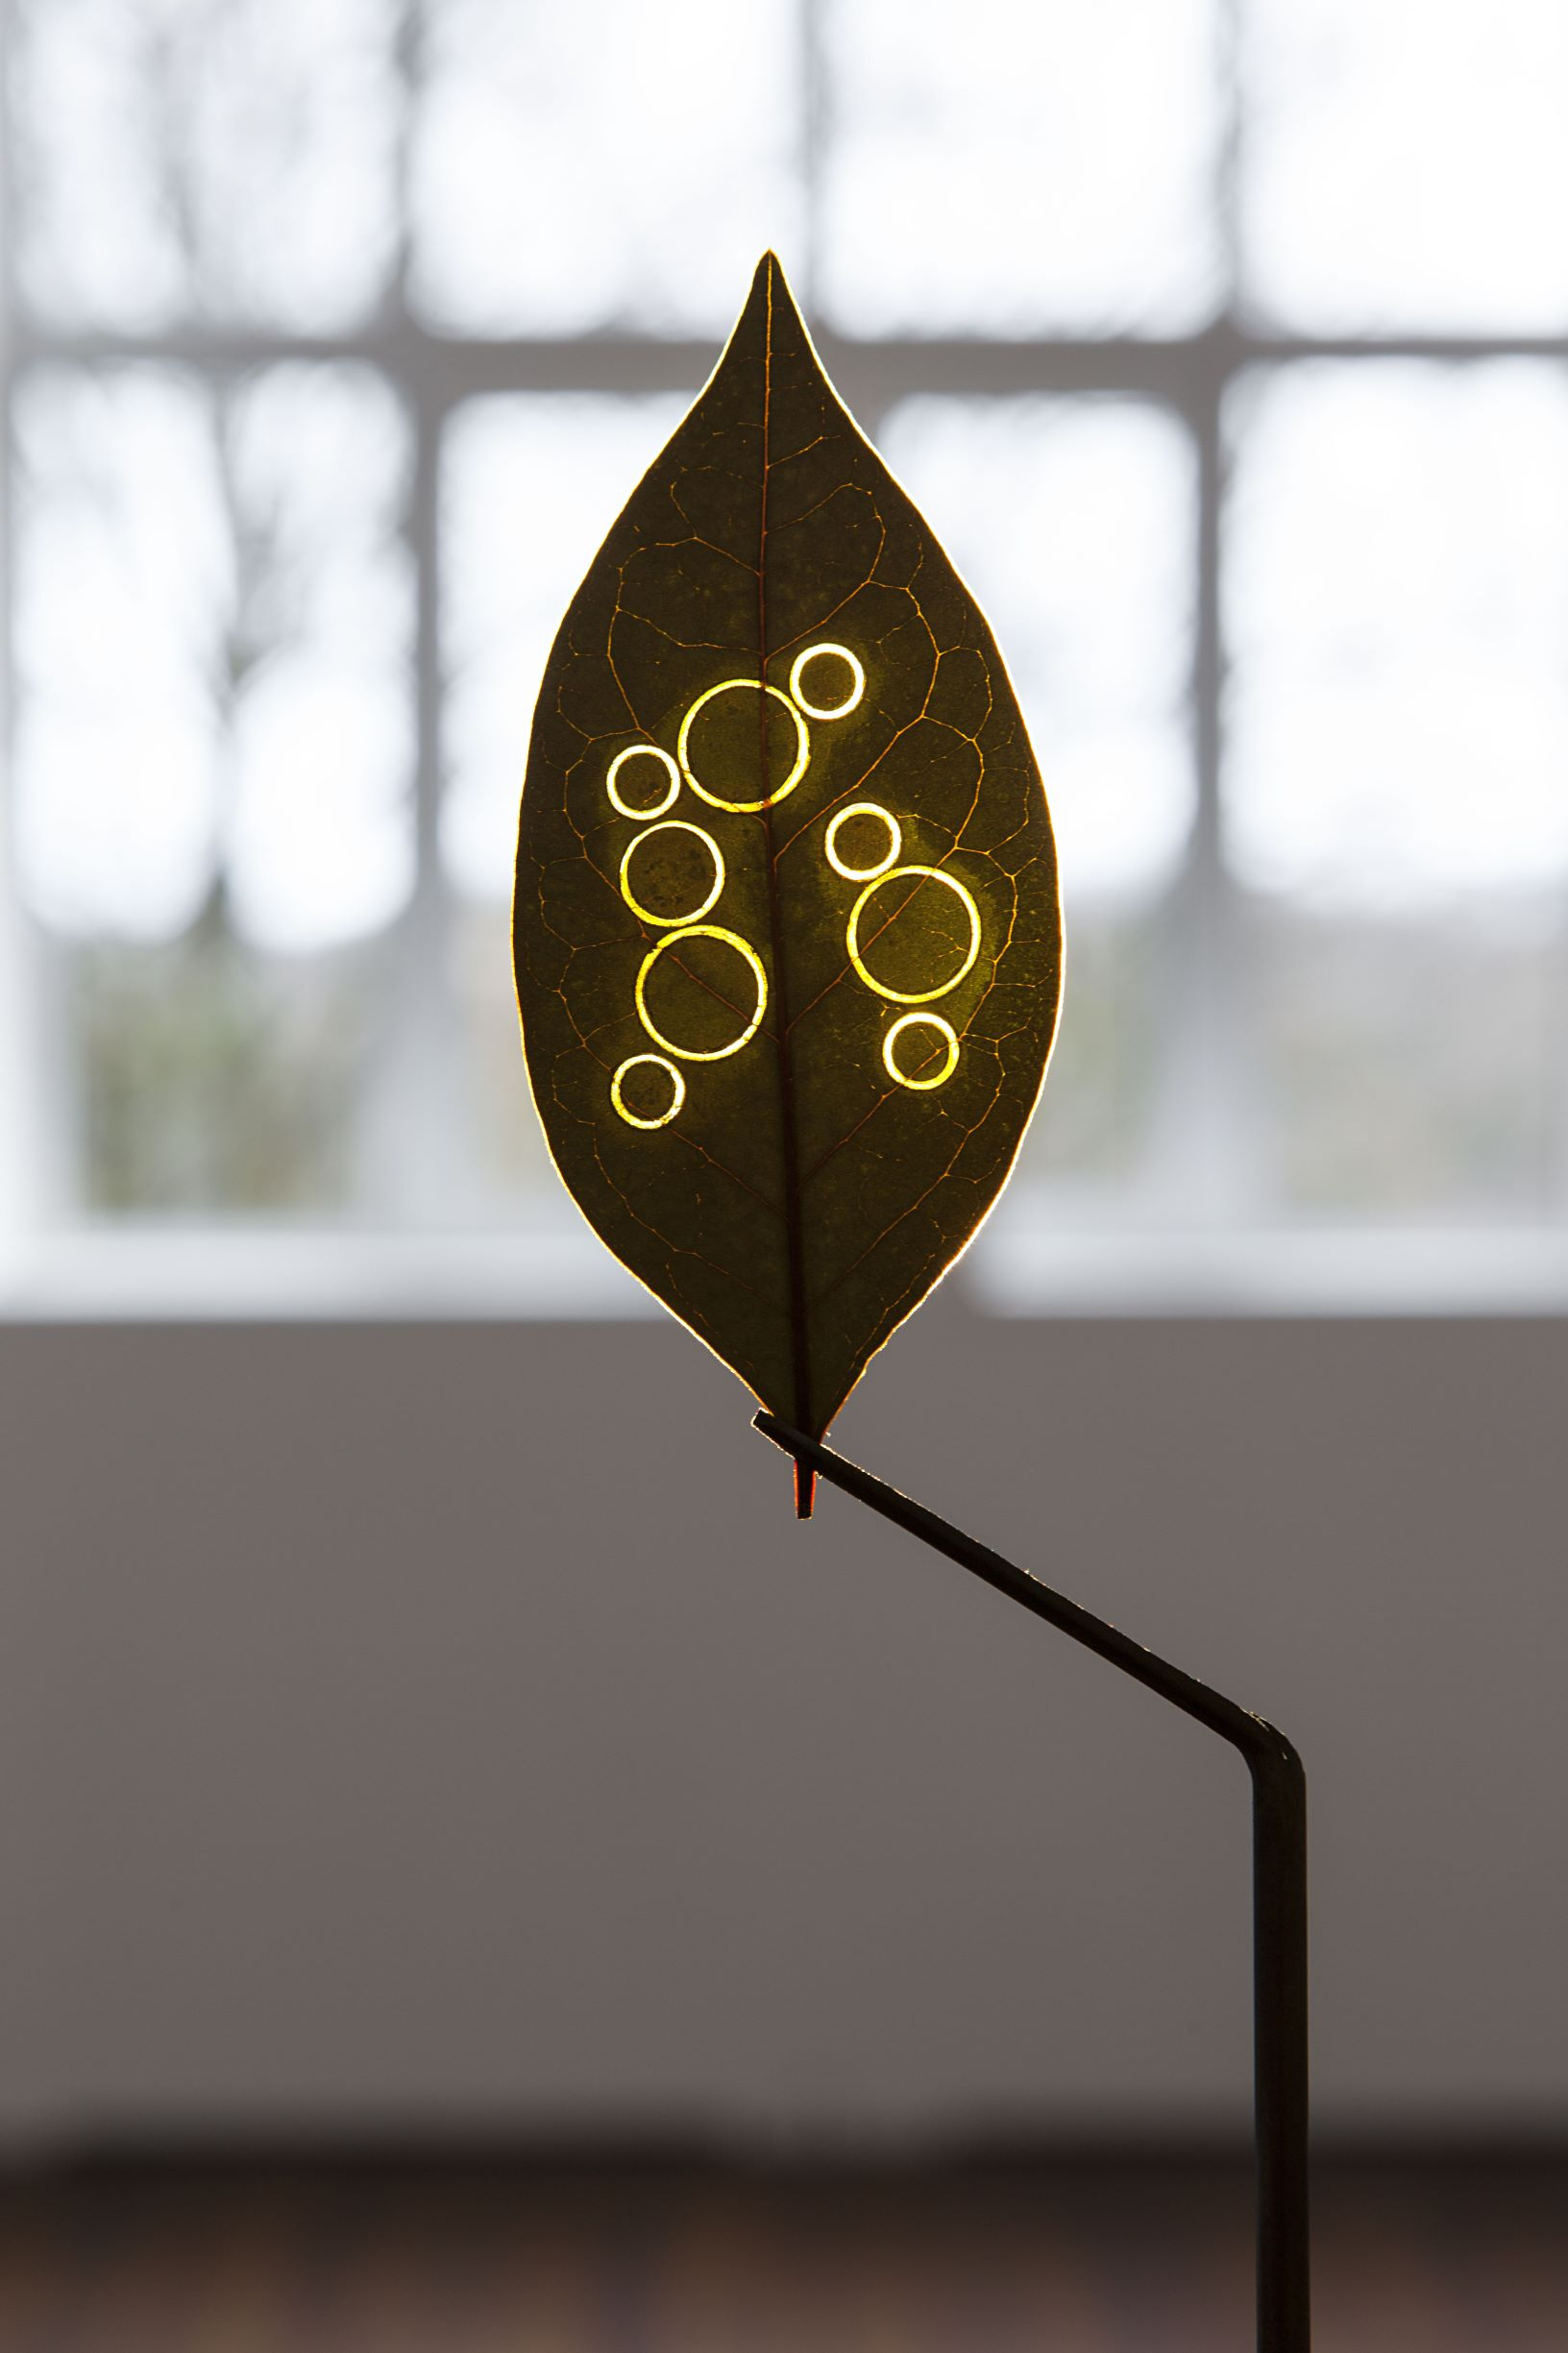 Daniel Steegmann Mangrané, Elegancia y renuncia, 2011; Foglia essiccata (ficus elastica japonicum), supporto in metallo, proiezione di diapositive. Veduta dell'installazione: CRAC Alsace Centre Rhénan d'Art Contemporain, Altkirch, 2014. Courtesy dell'artista e Esther Schipper, Berlino. Foto: Andrea Rossetti